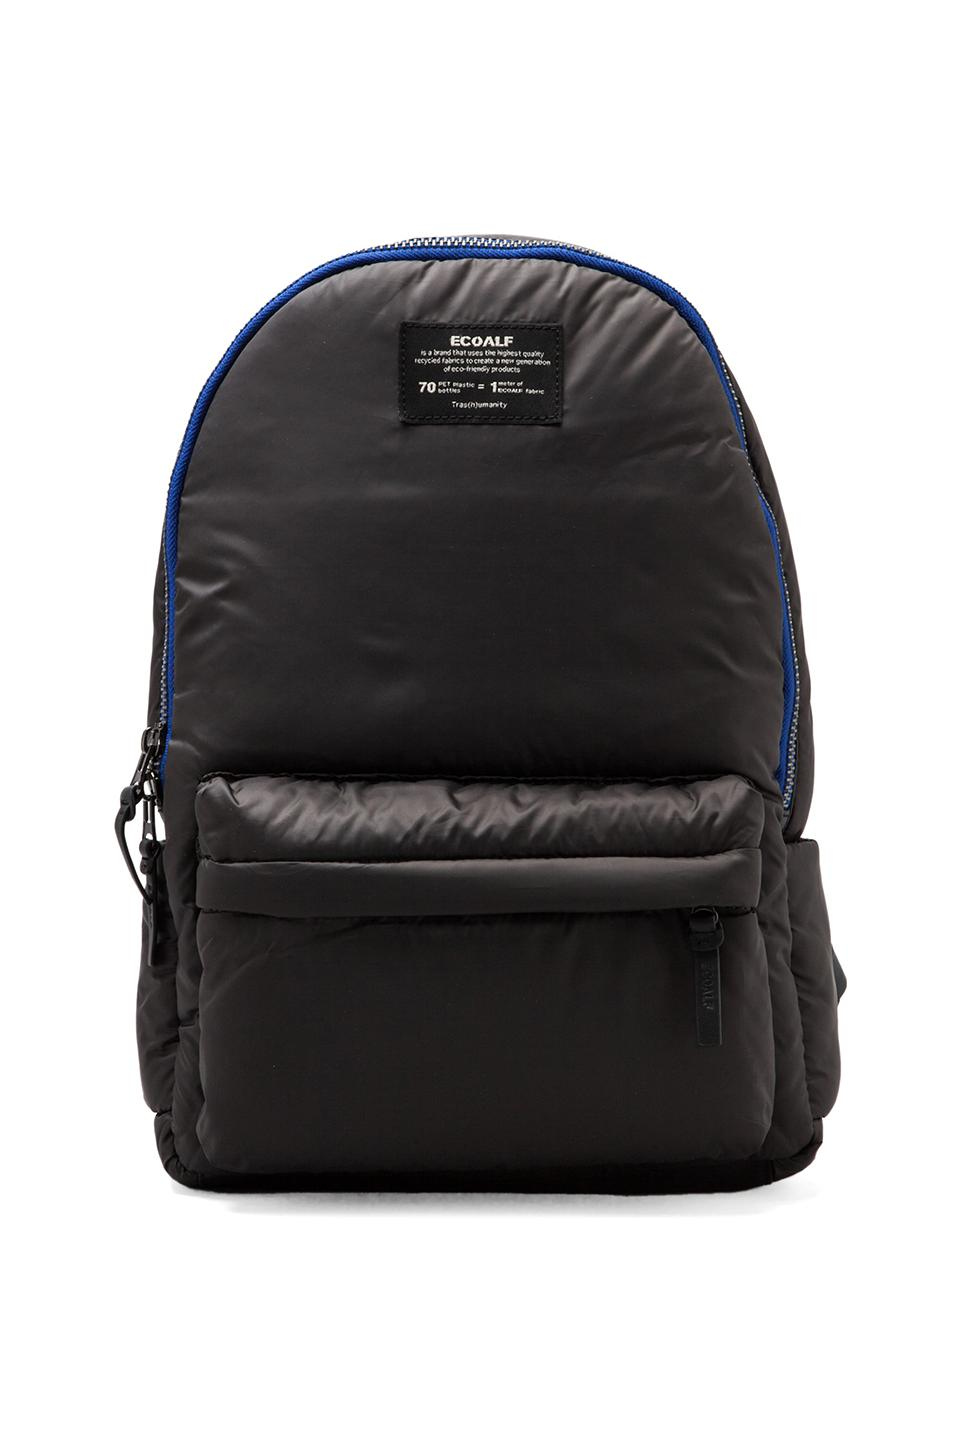 ECOALF Oslo Backpack in Anthracite